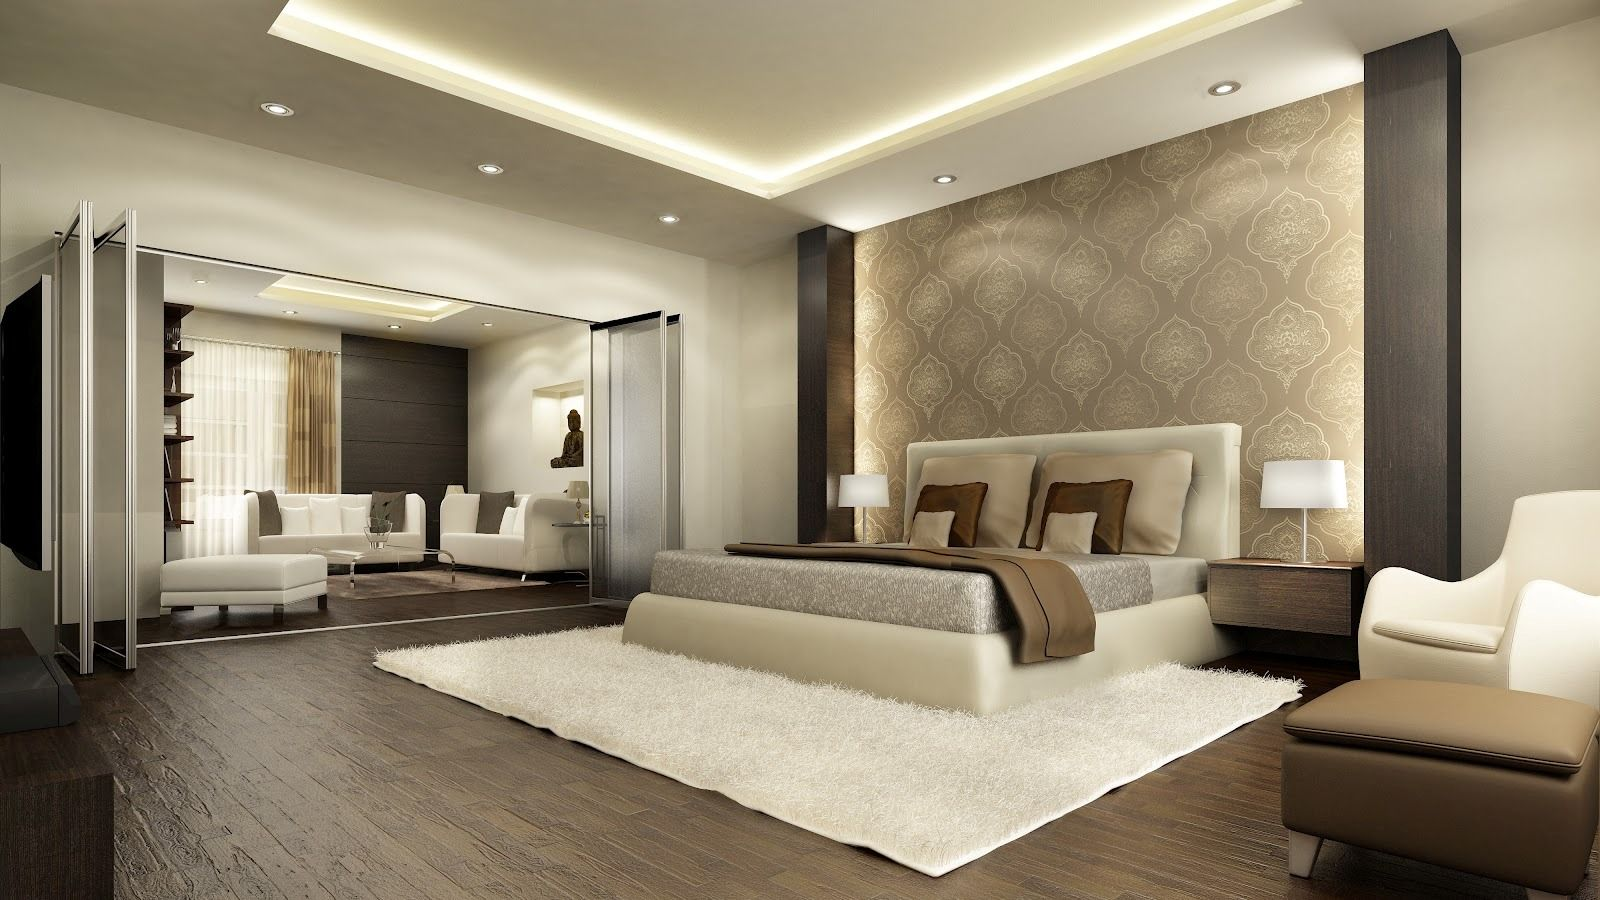 Modern Master Bedroom Suites modern master bedroom design ideas with luxury lamps white bed